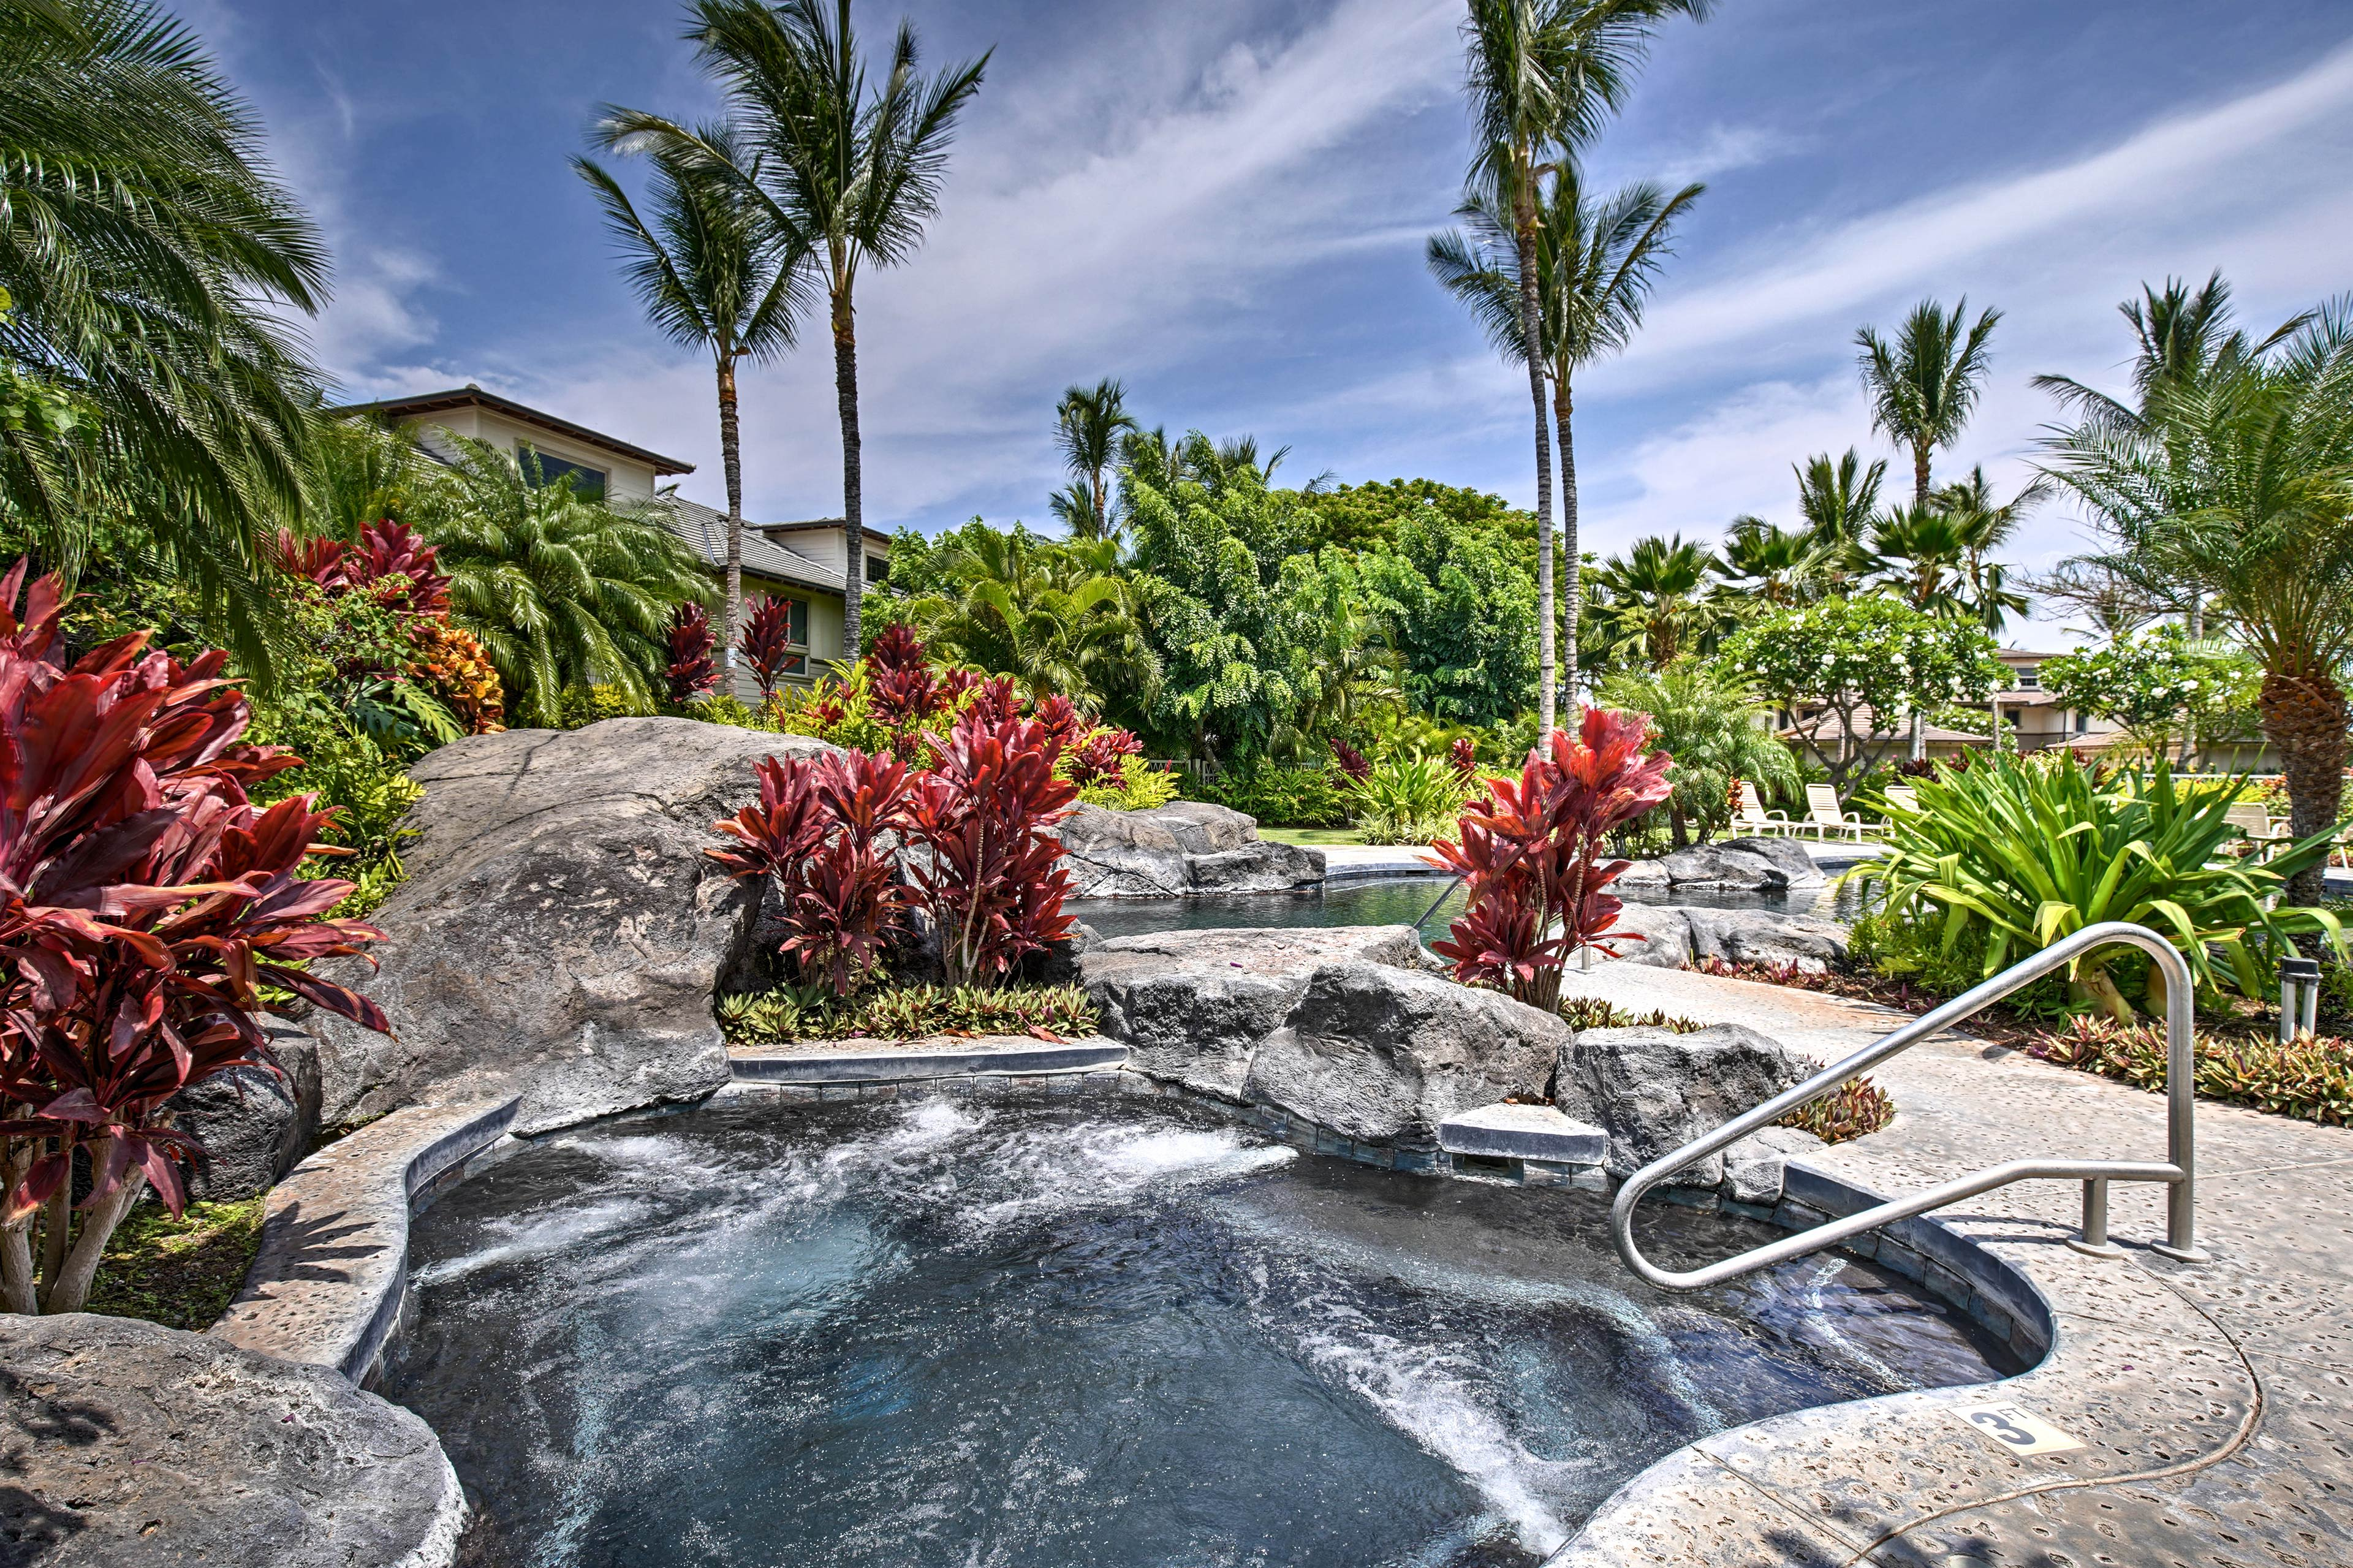 Cool off with a dip in the resort-style pool or take a soak in the hot tub.